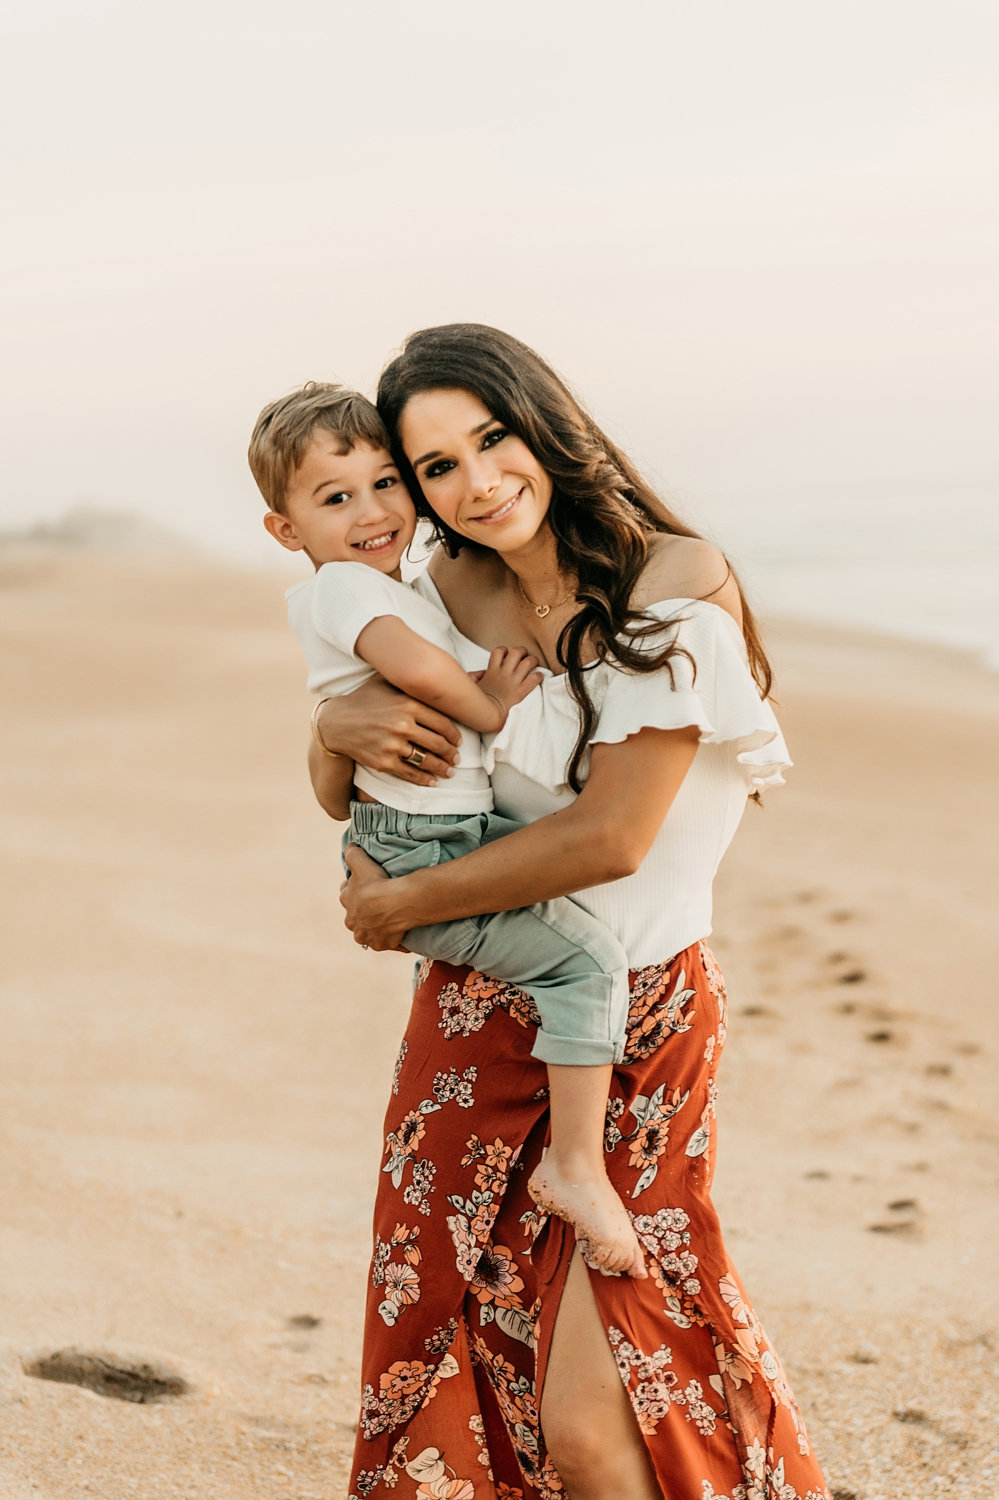 mother and son beach portrait, motherhood portrait session, Ryaphotos